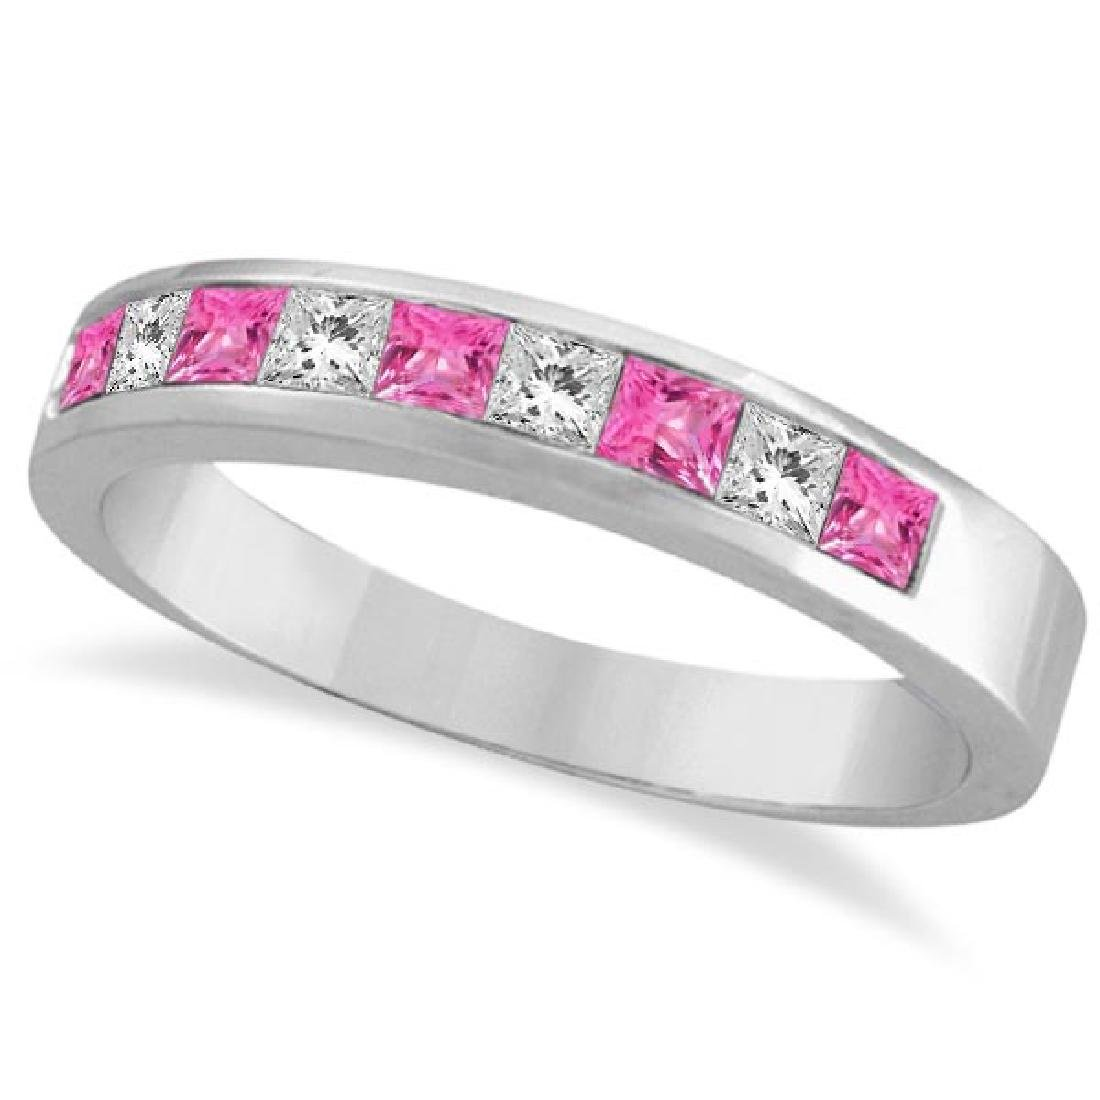 Princess Channel-Set Diamond and Pink Sapphire Ring Ban